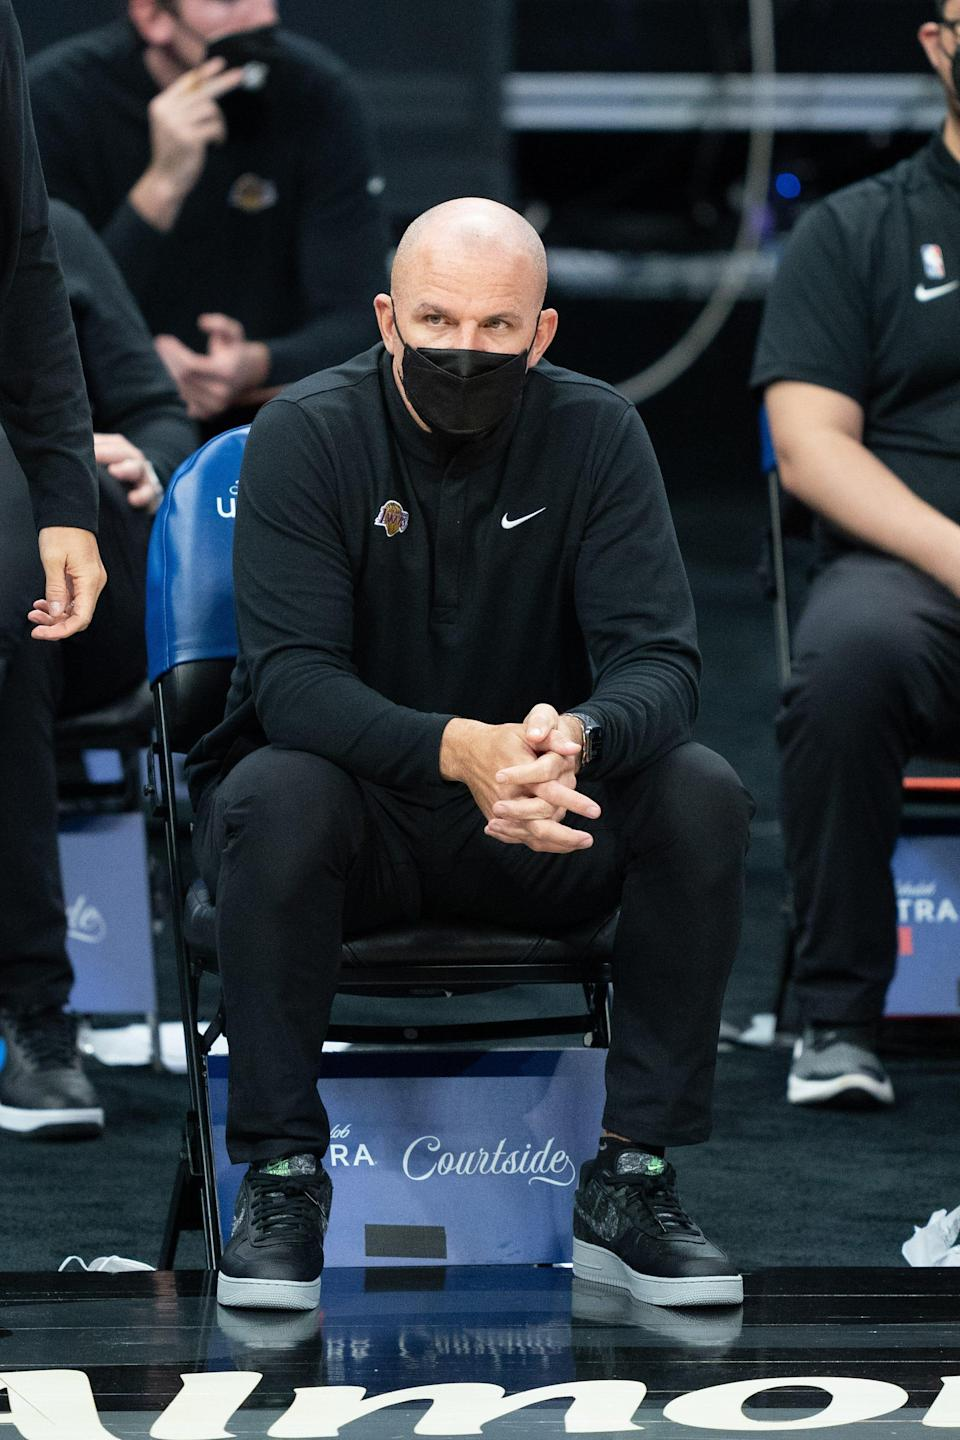 Los Angeles Lakers assistant coach Jason Kidd during the fourth quarter against the Sacramento Kings at Golden 1 Center.